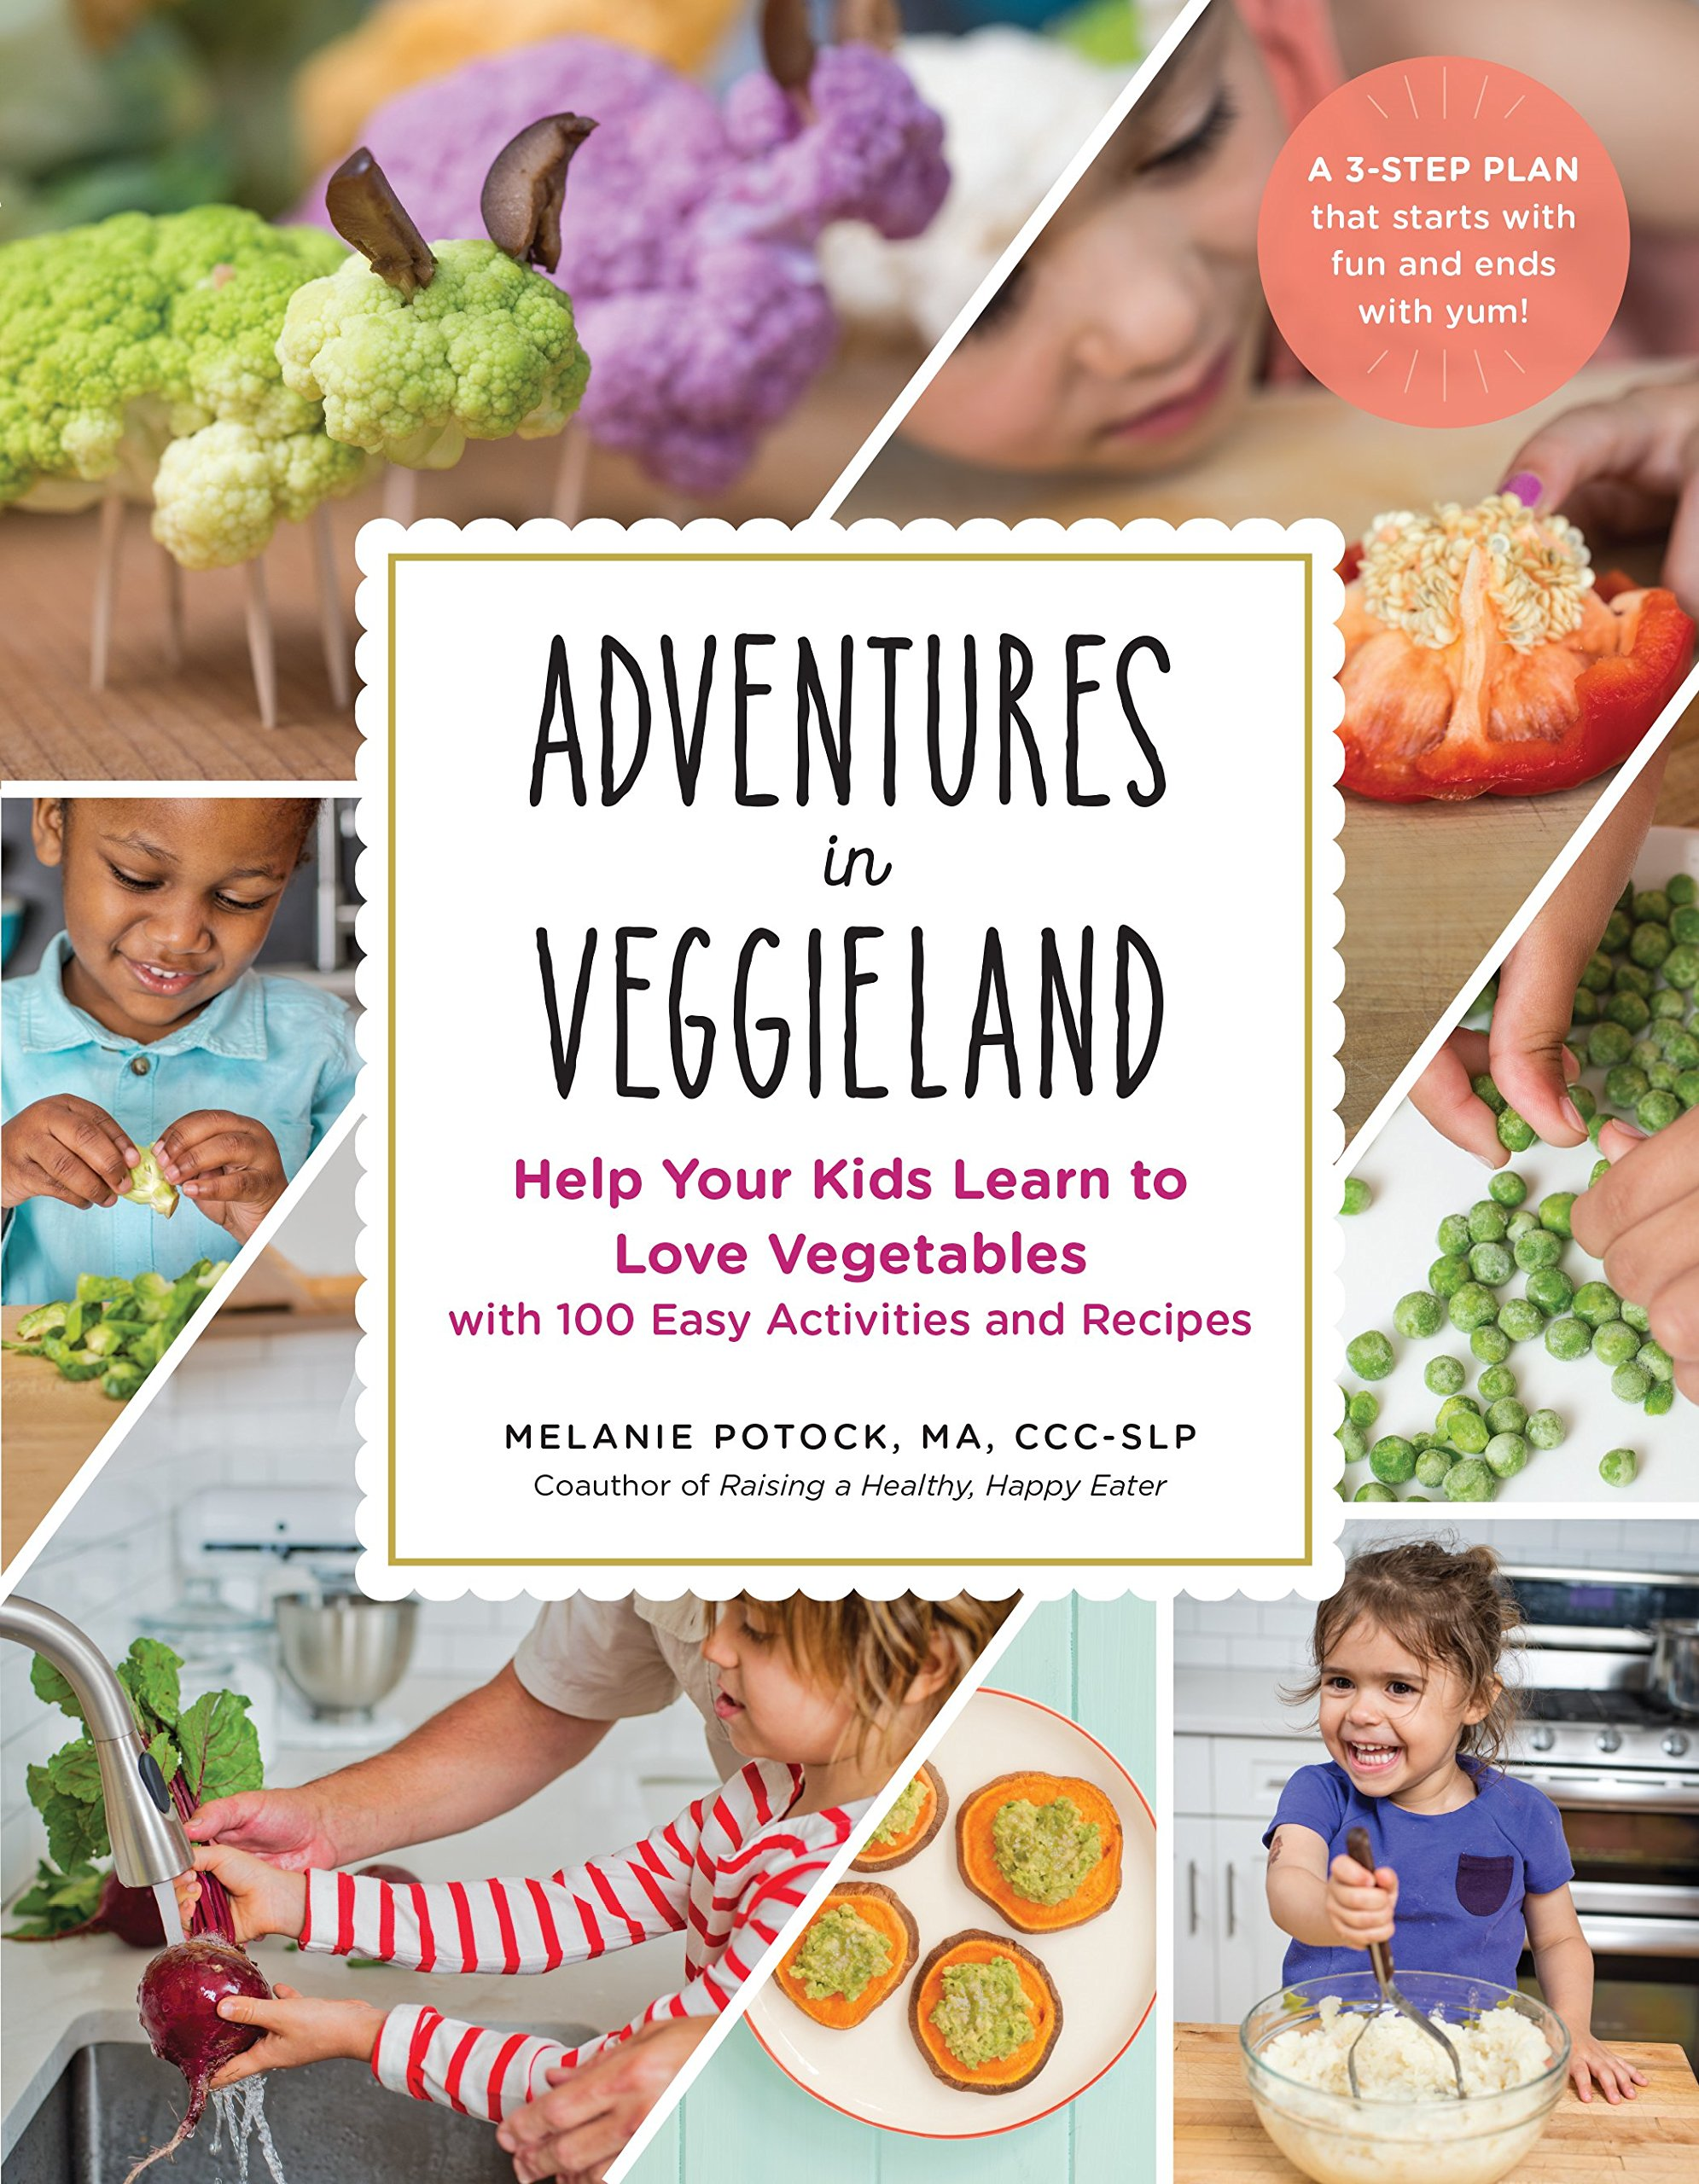 Adventures in Veggieland: Help Your Kids Learn to Love Vegetables_with 100 Easy Activities and Recipes by The Experiment